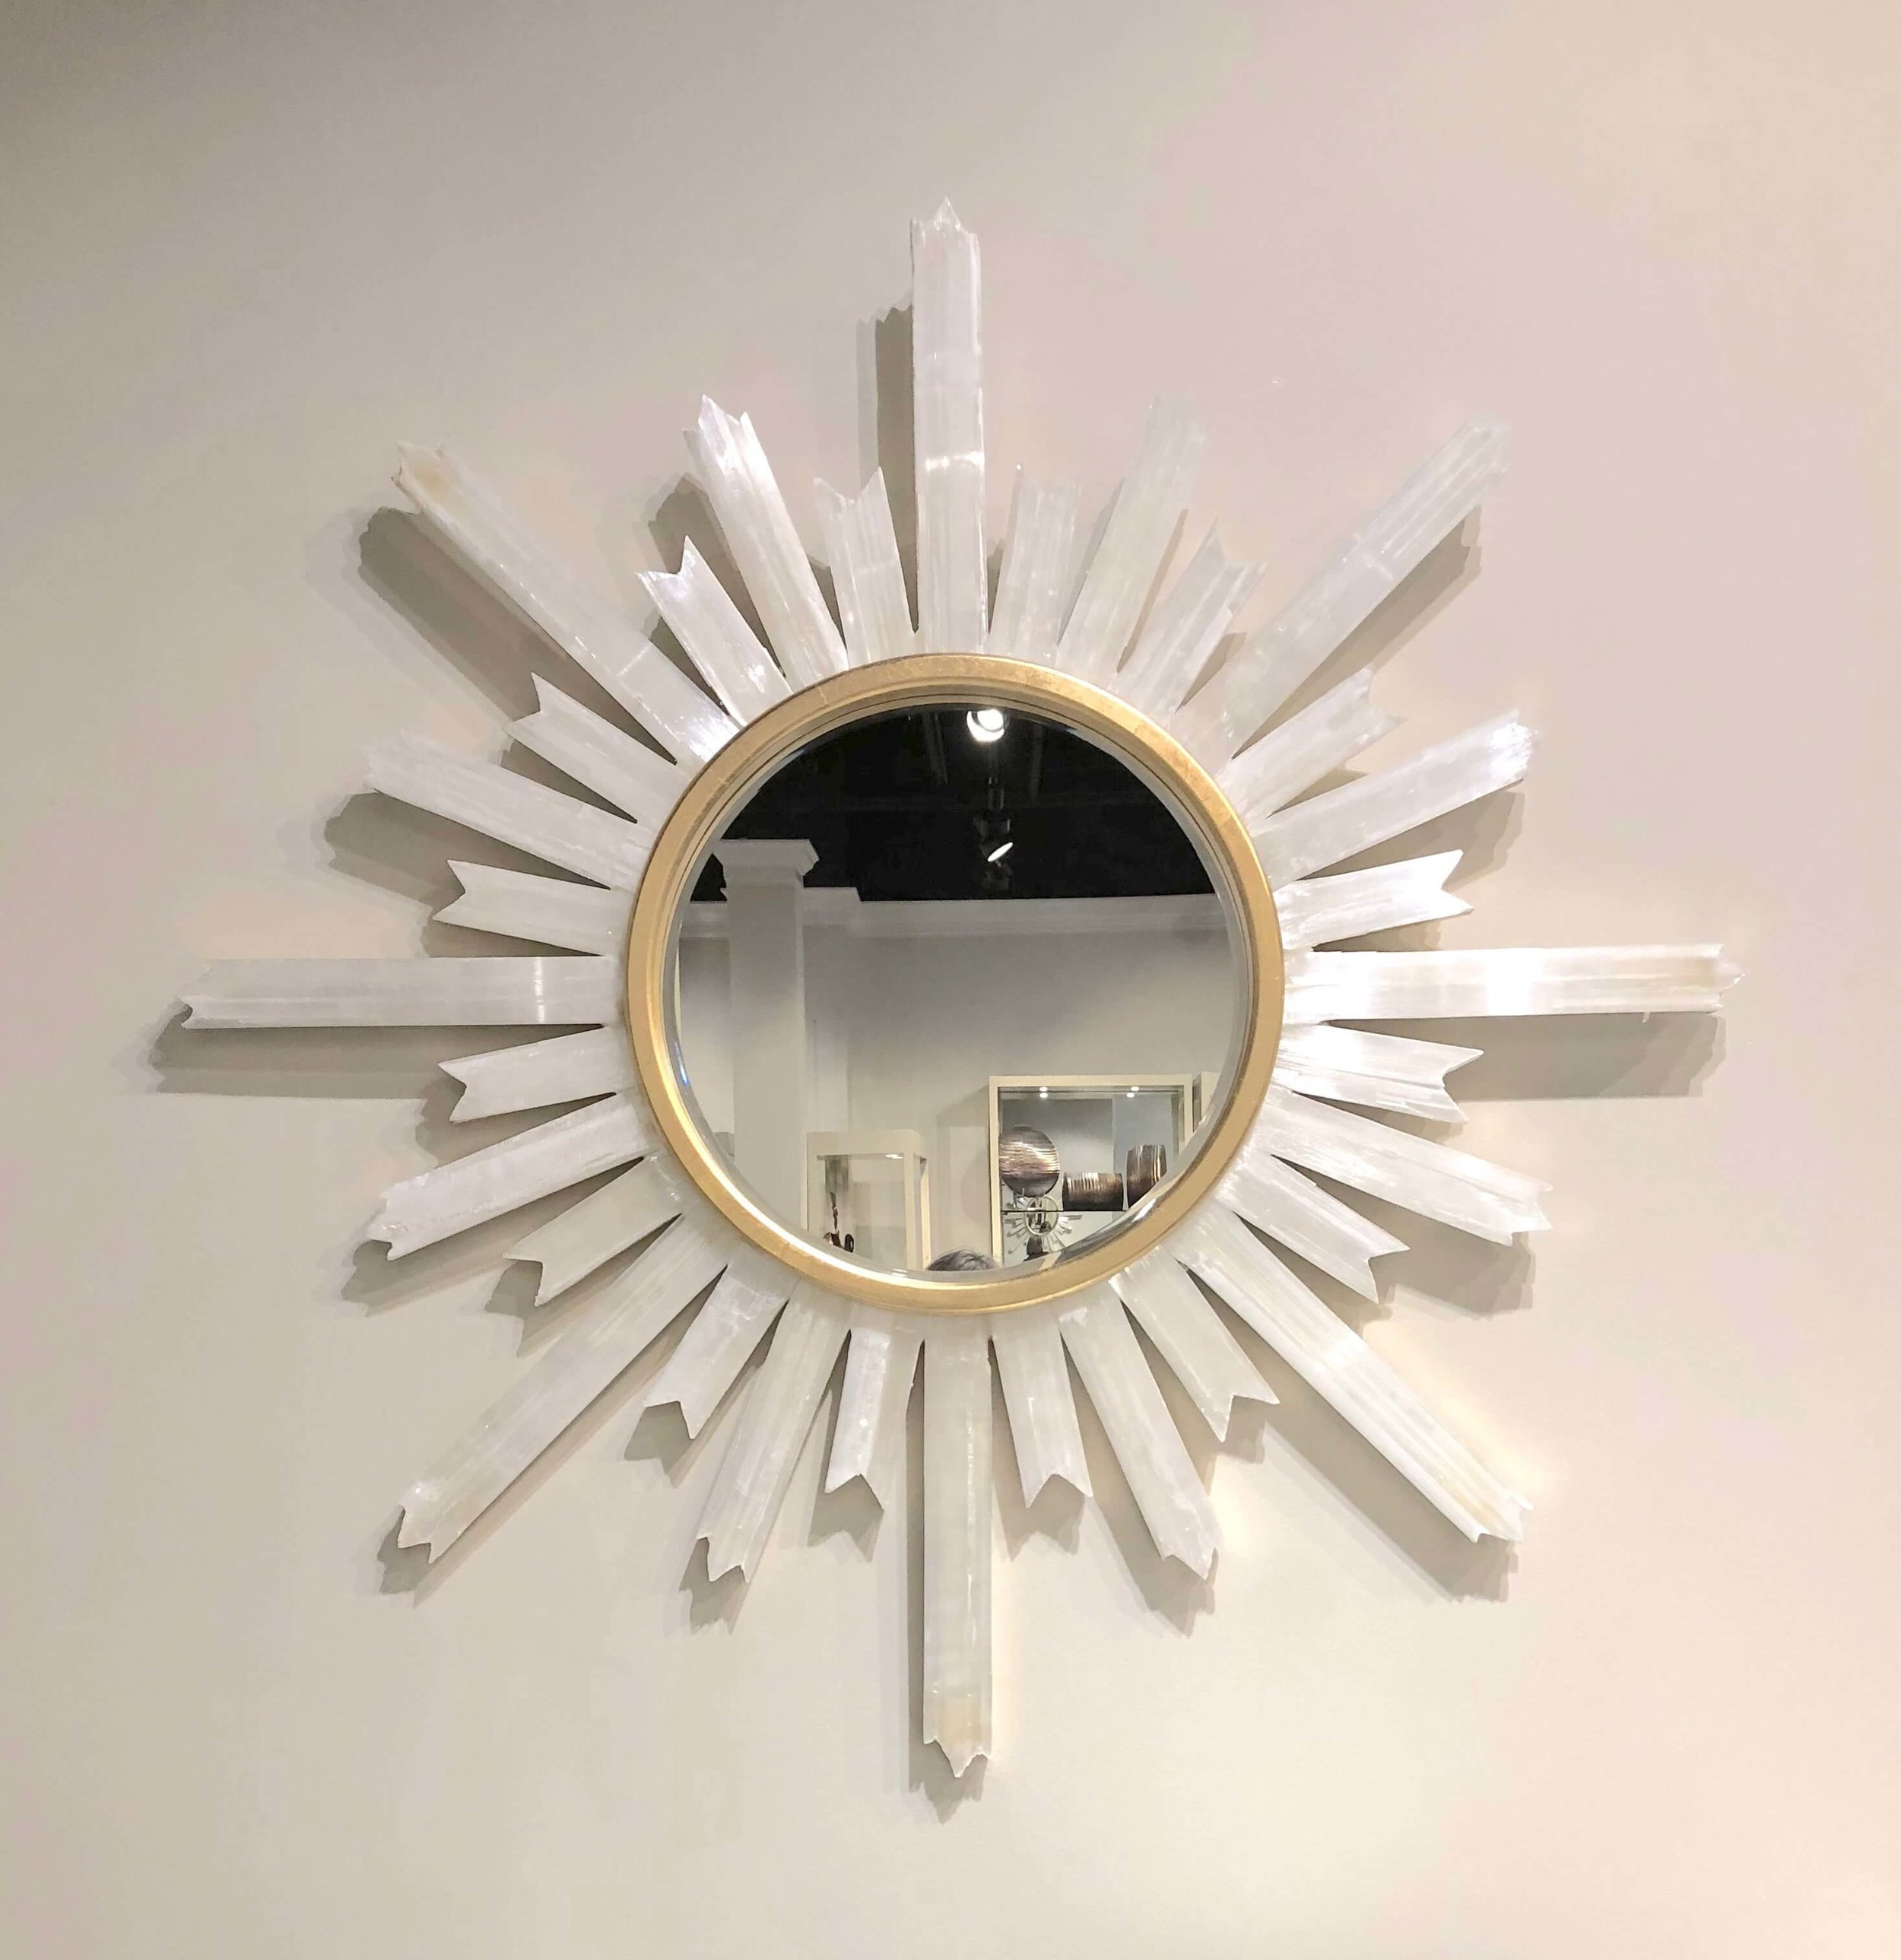 Selenite framed starburst mirror from John Richard.